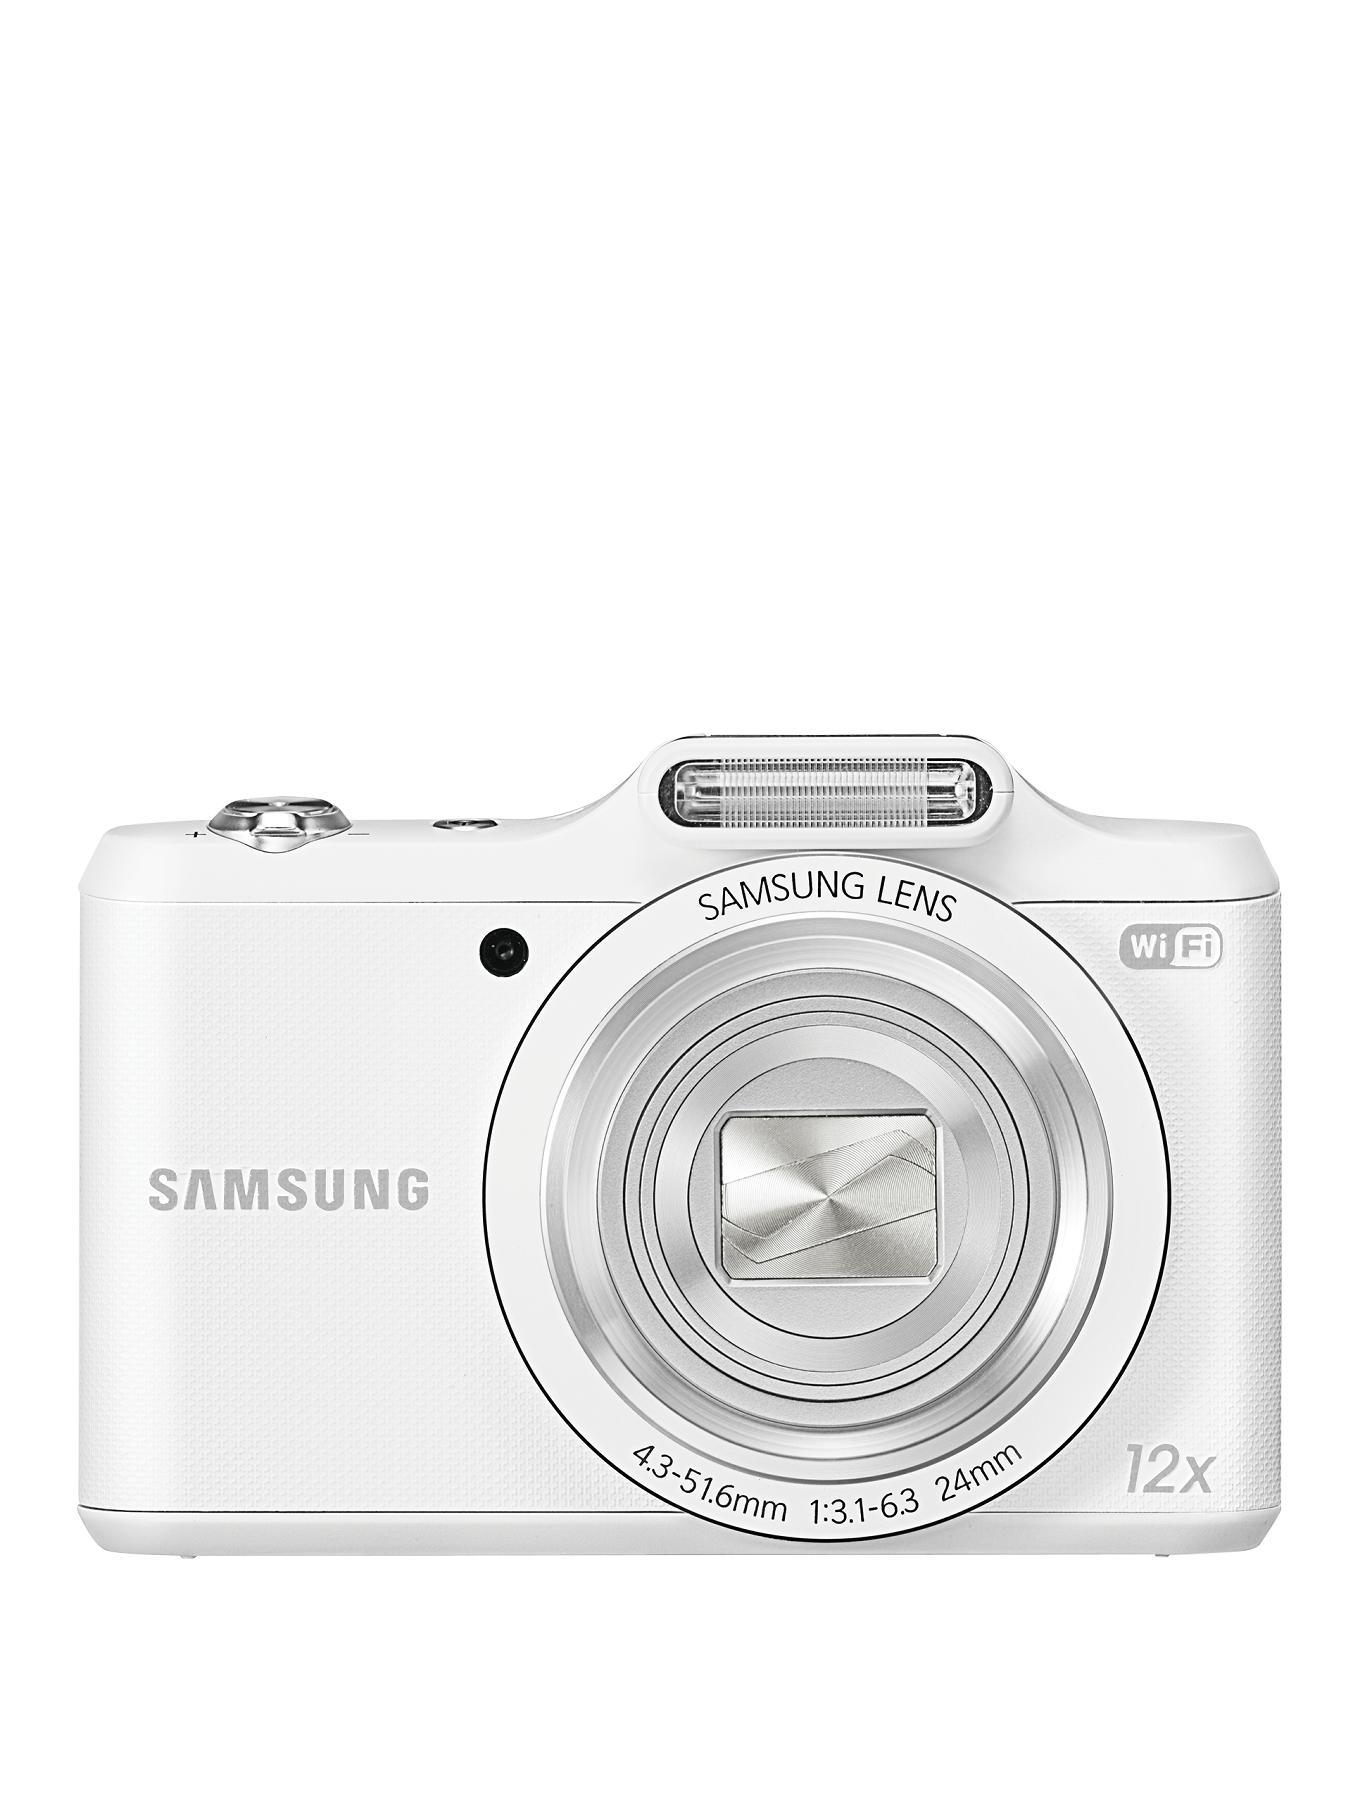 Samsung WB50F 16 Megapixel Digital Smart Camera - White, White,Black